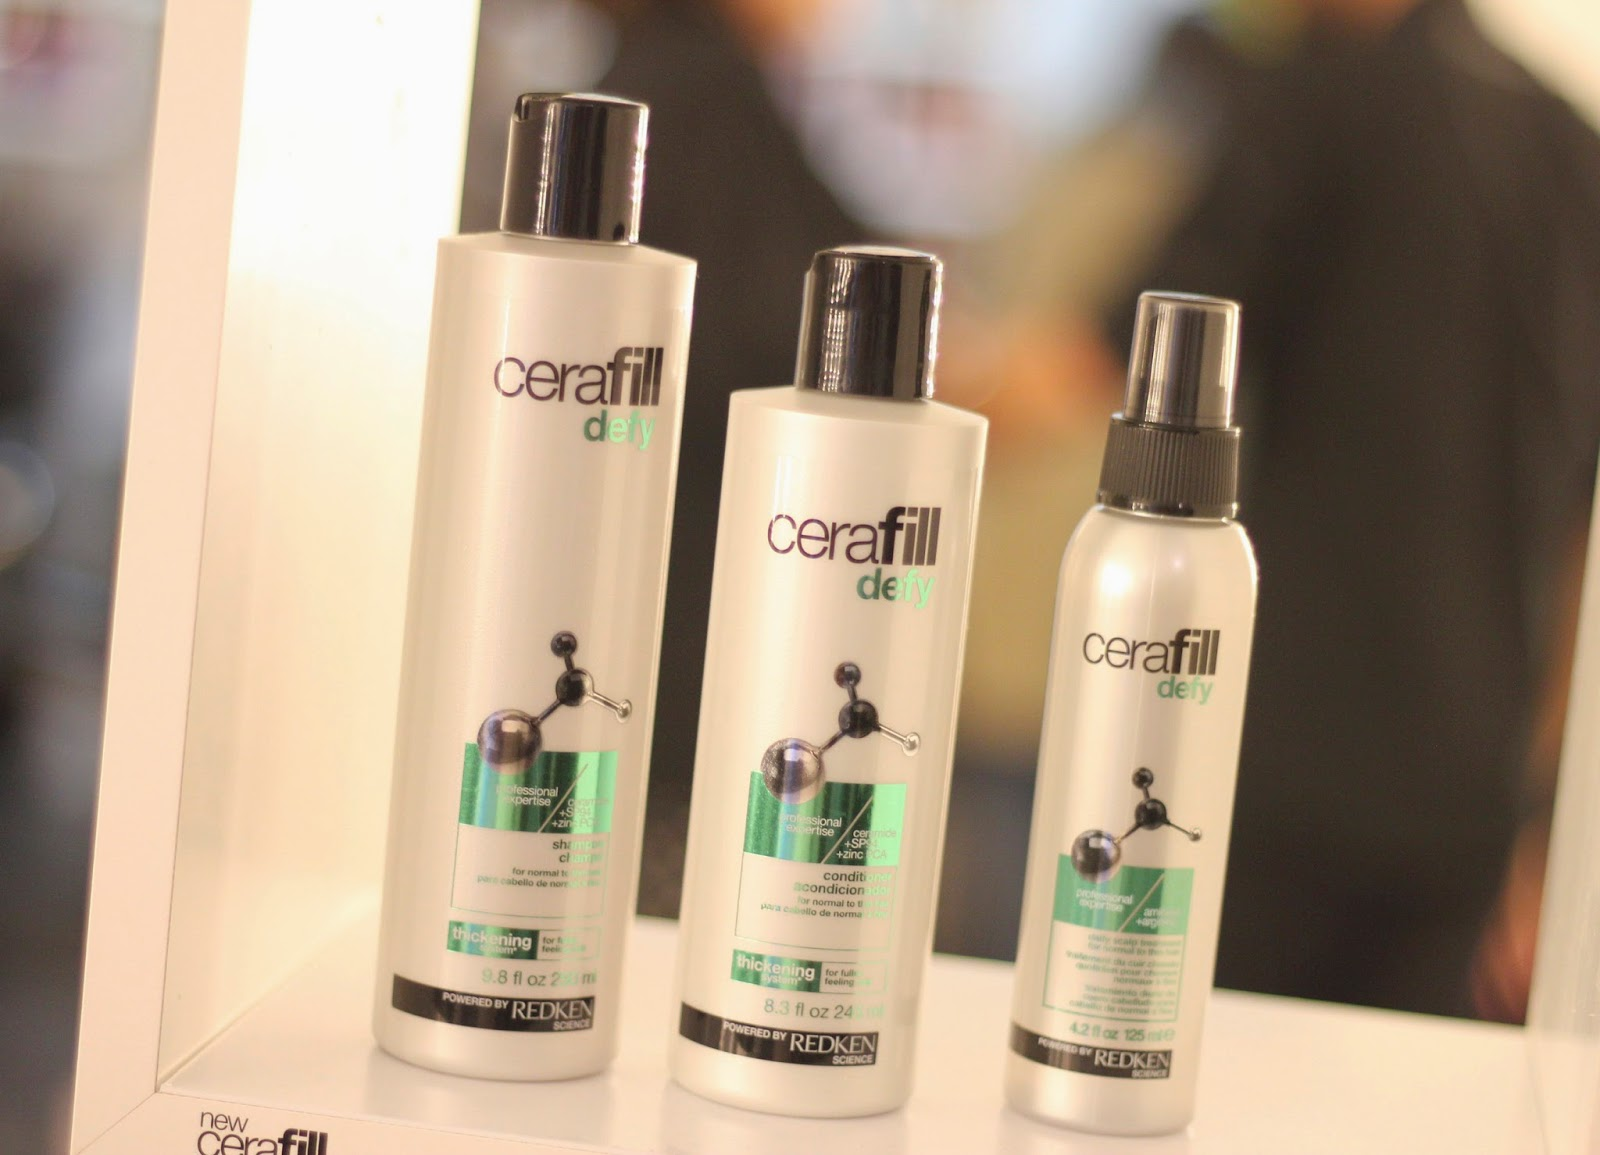 photo-cerafill-defy-redken-hair-pelo-densidad-caida-salon-making_of